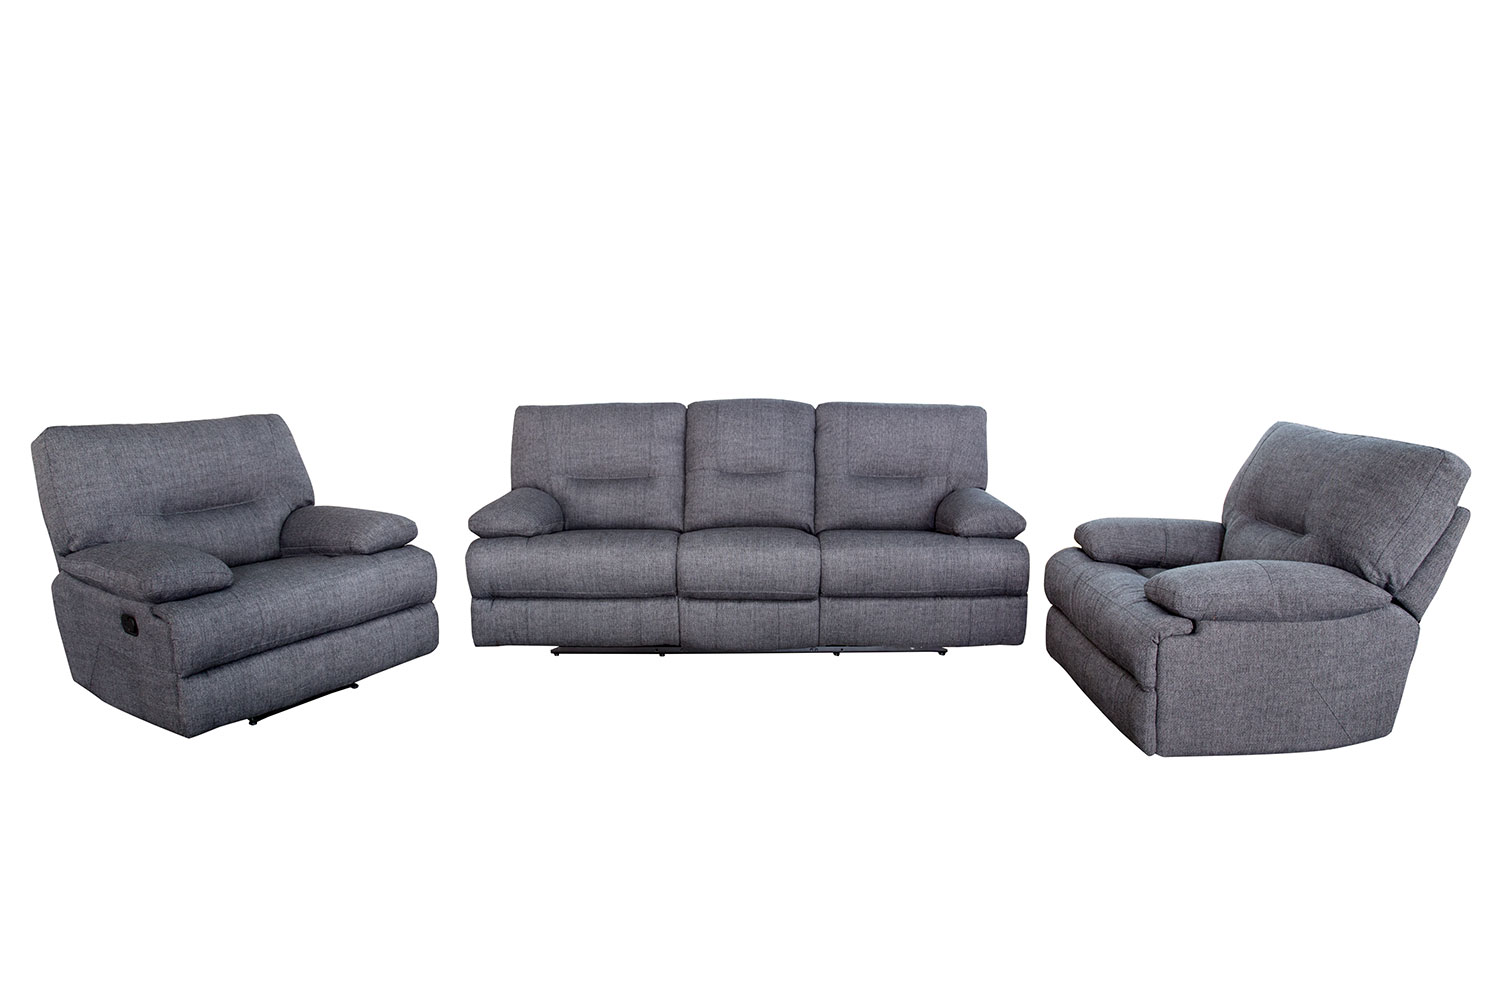 leather recliner chairs harvey norman staples osgood chair warranty lounge suites – couch, chairs, sofa, coffee tables & more | new zealand